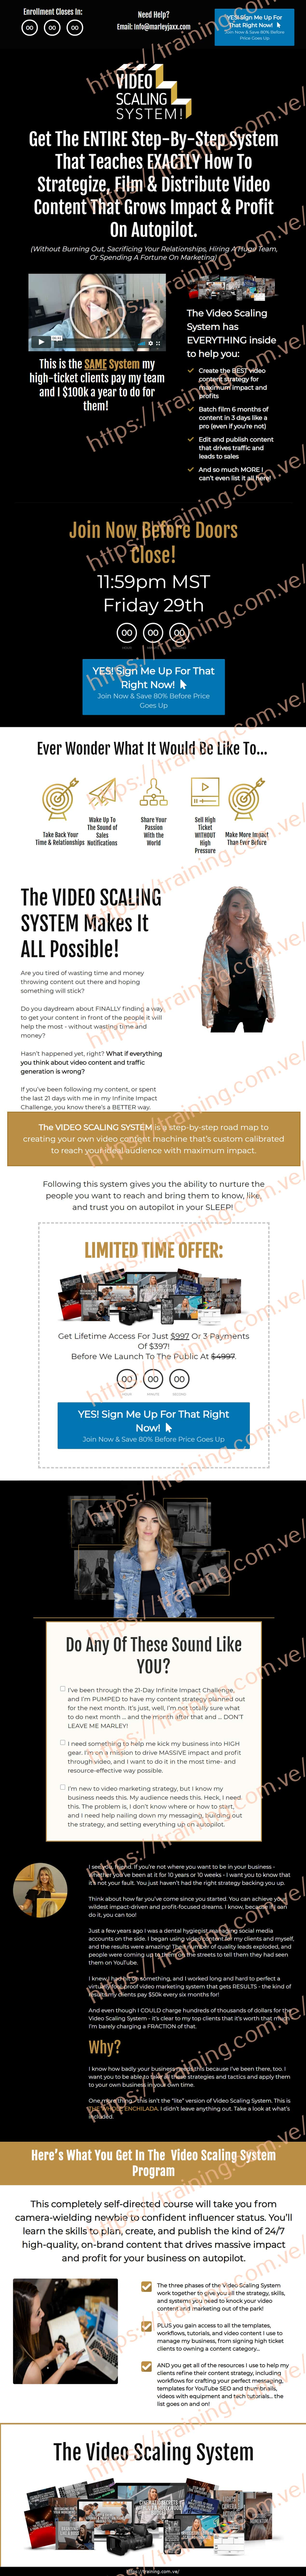 Video Scaling System by Marley Jaxx Sales Page